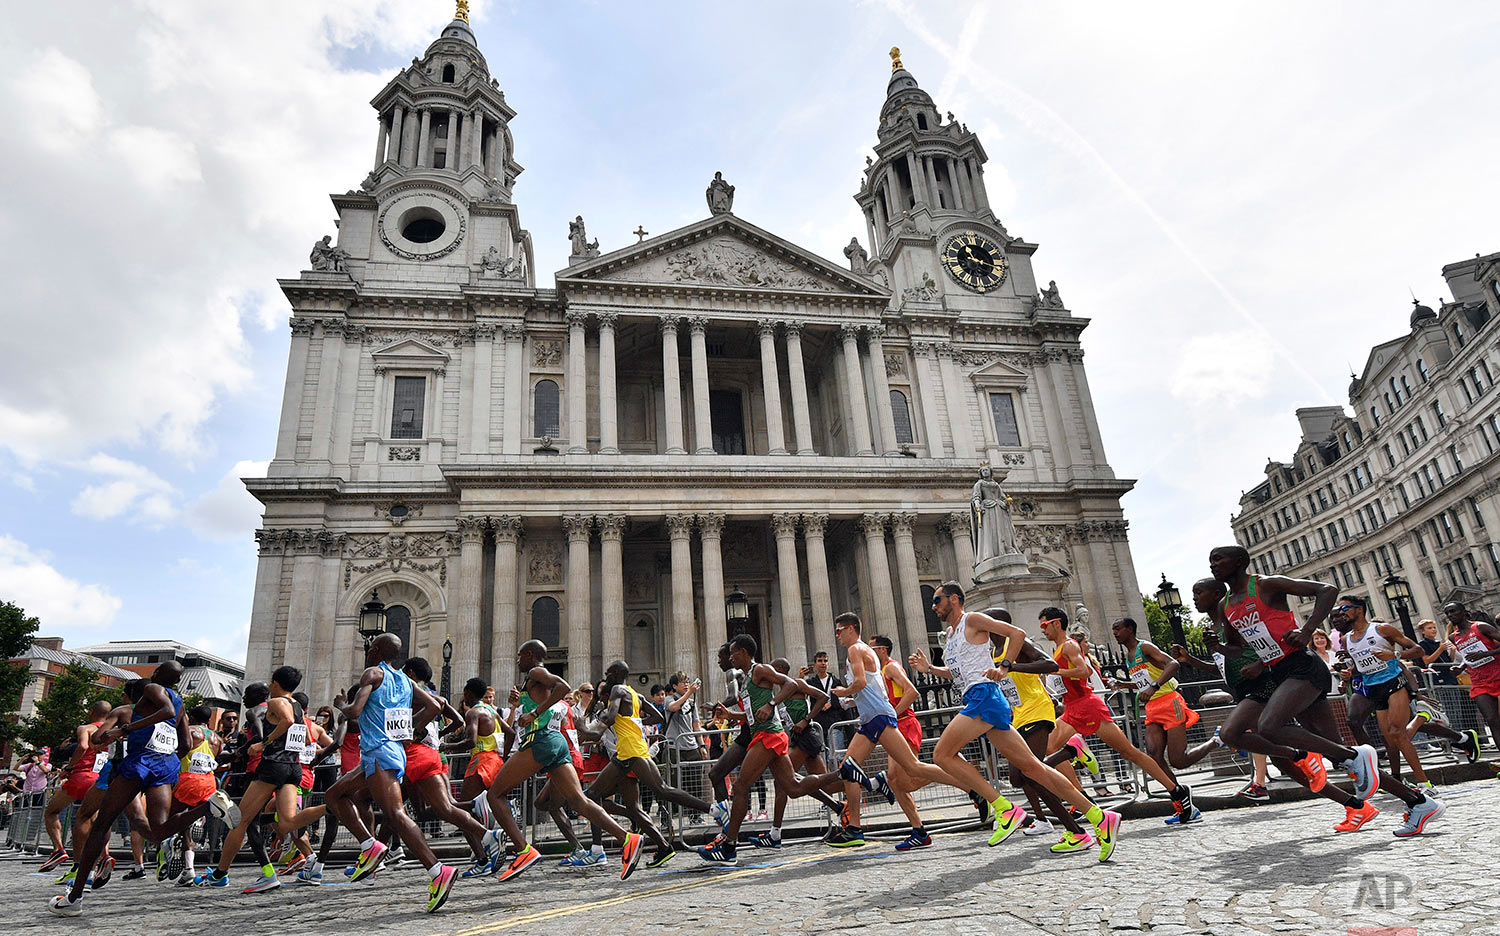 Kenya's Geoffrey Kipkorir Kirui, right, runs past St. Paul's Cathedral in the Men's Marathon during the World Athletics Championships Sunday, Aug. 6, 2017. (AP Photo/Martin Meissner)